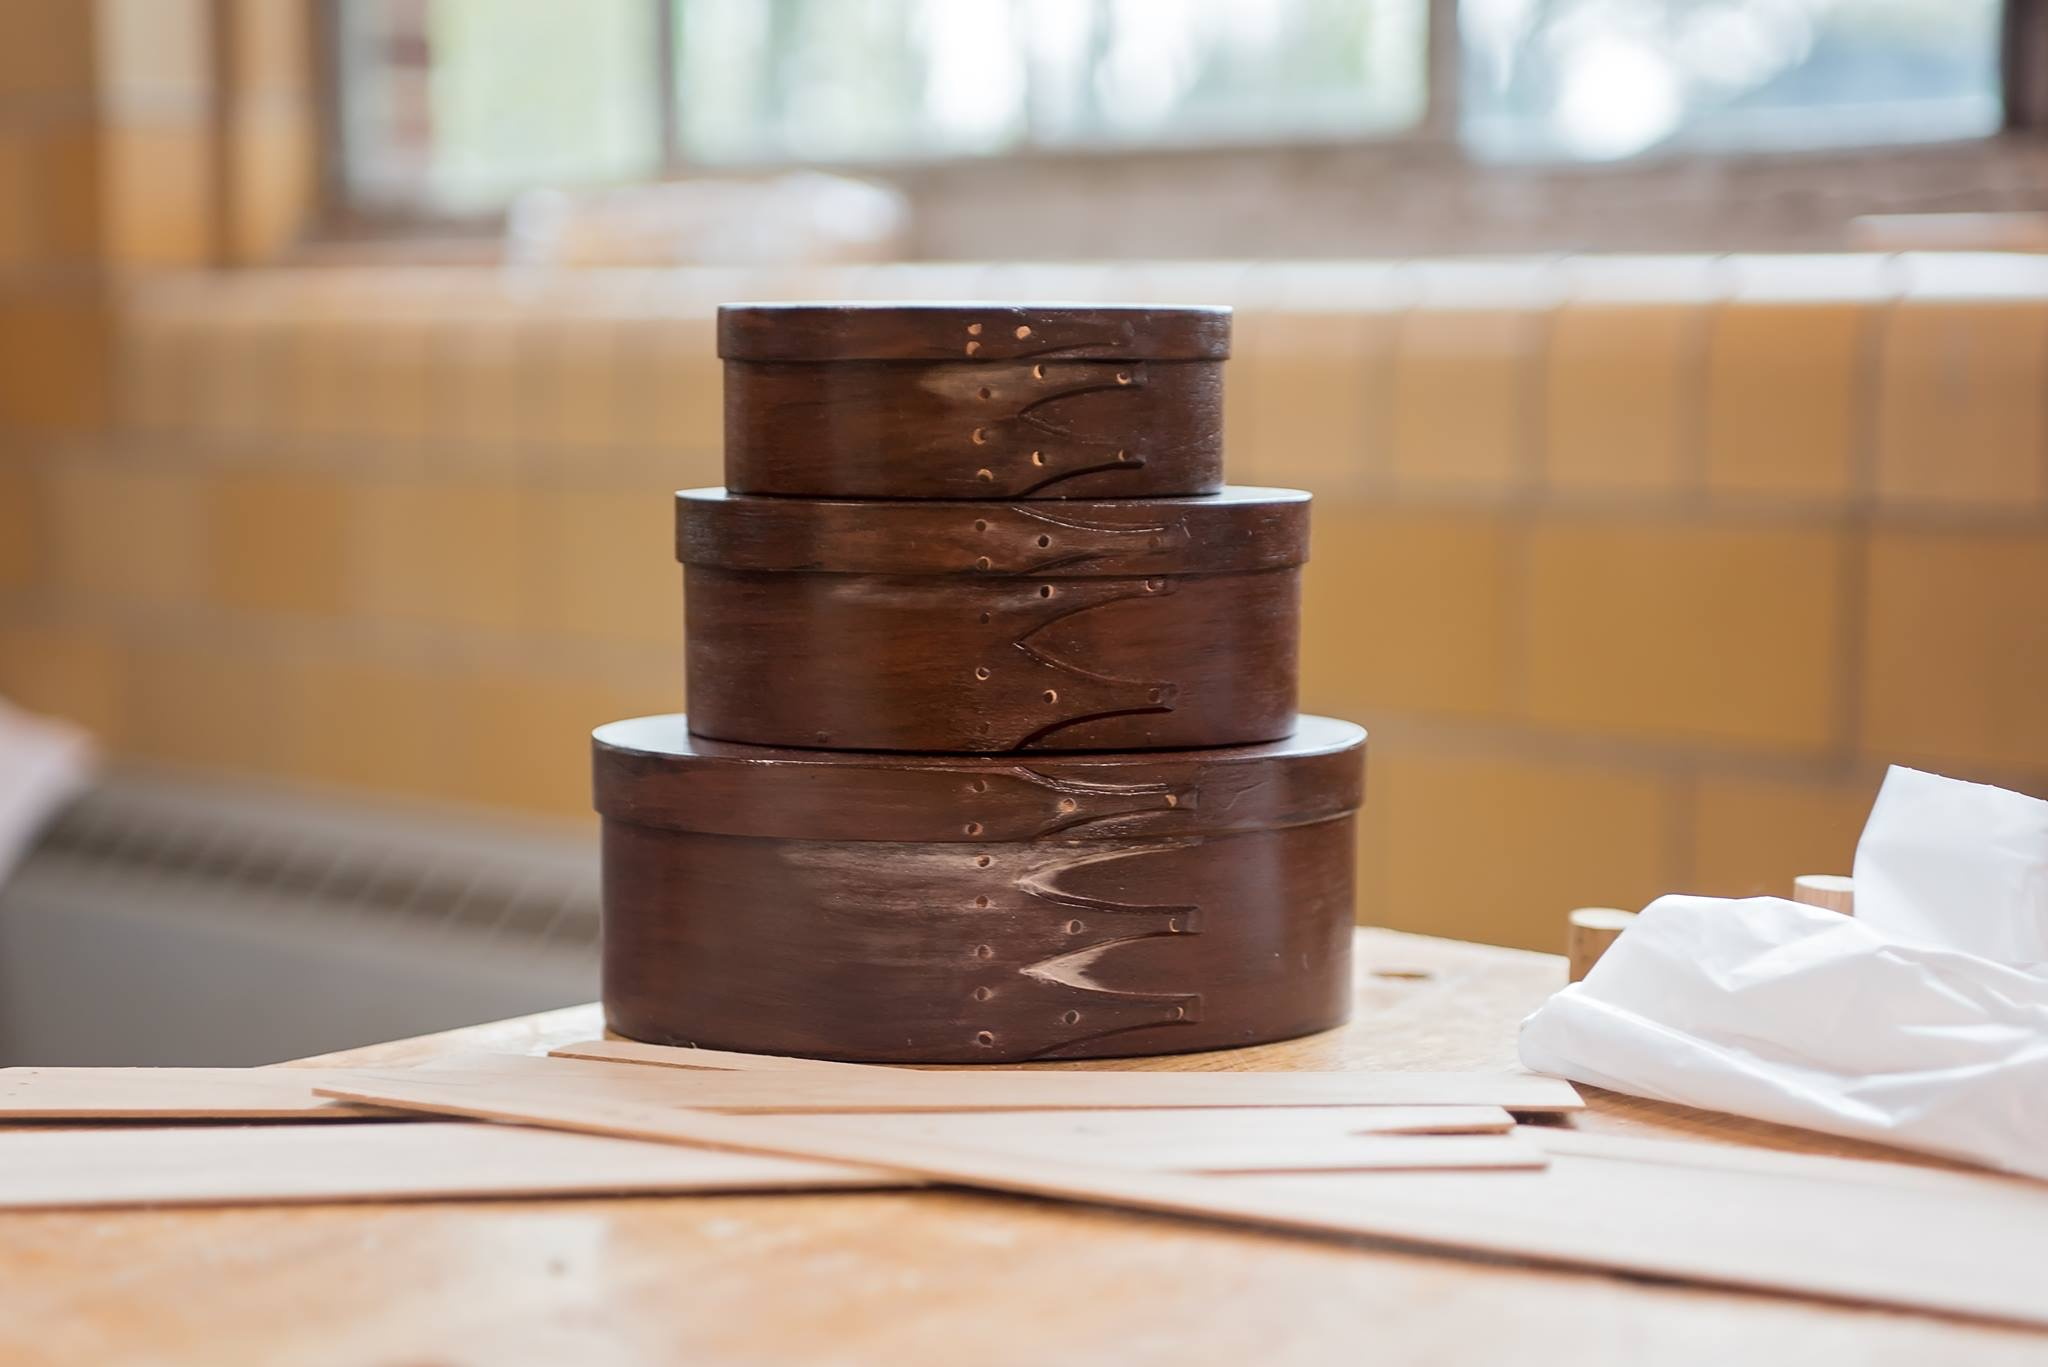 Shaker Oval Box Woodworking Classes - Learn the art of steam bending wood